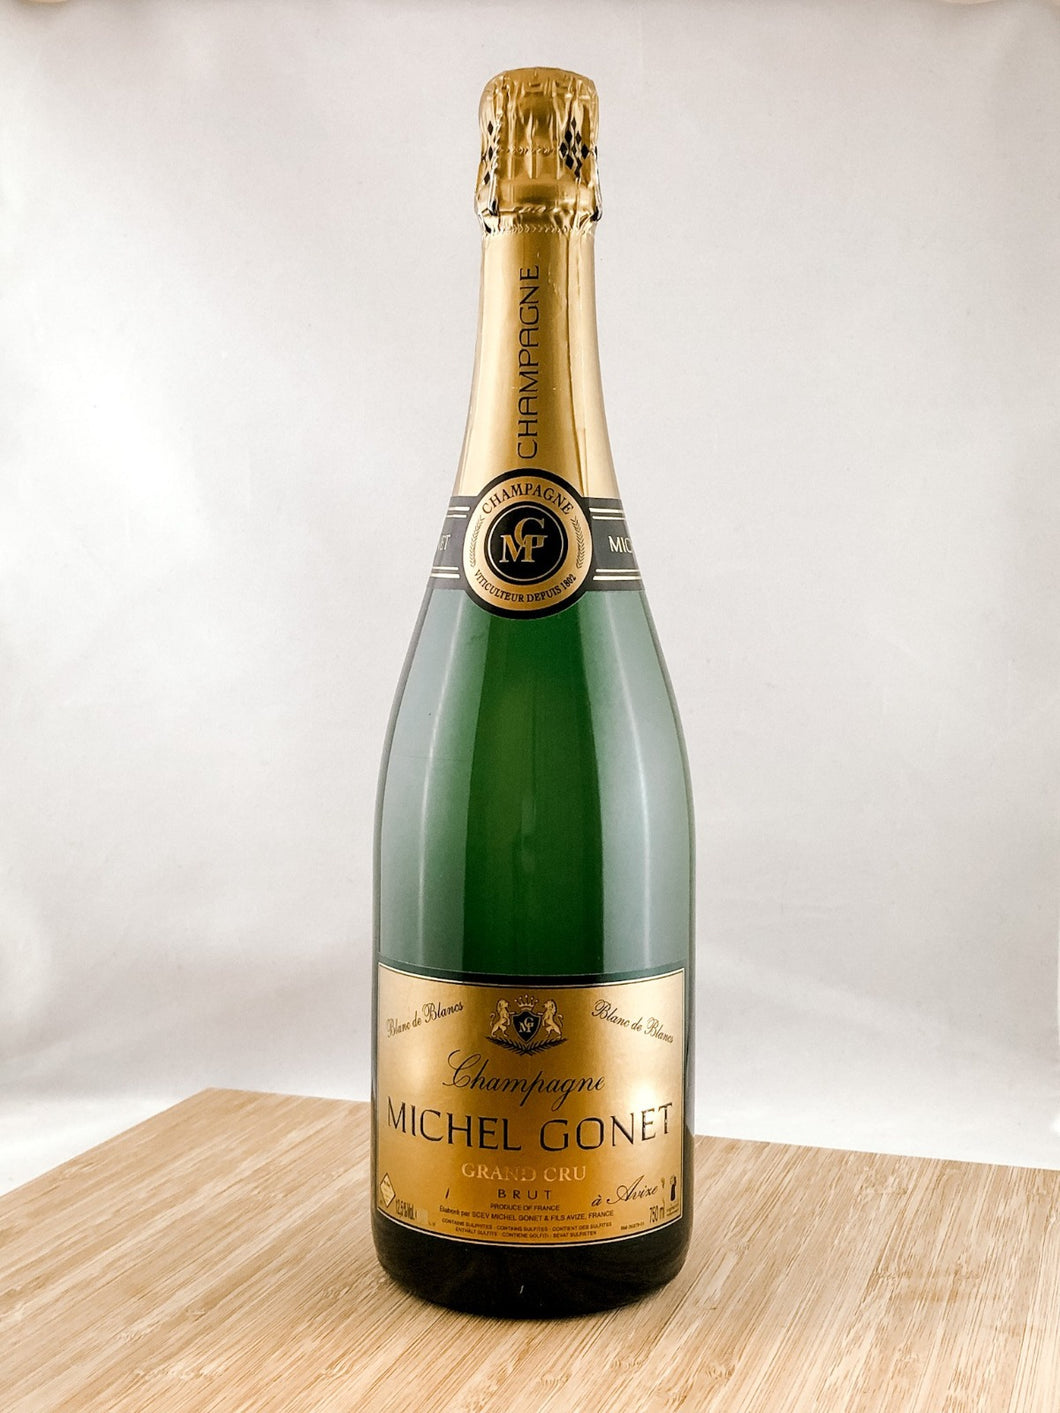 Michel Gonet blanc de blancs champagne, part of our champagne delivery and great for unique gift ideas.